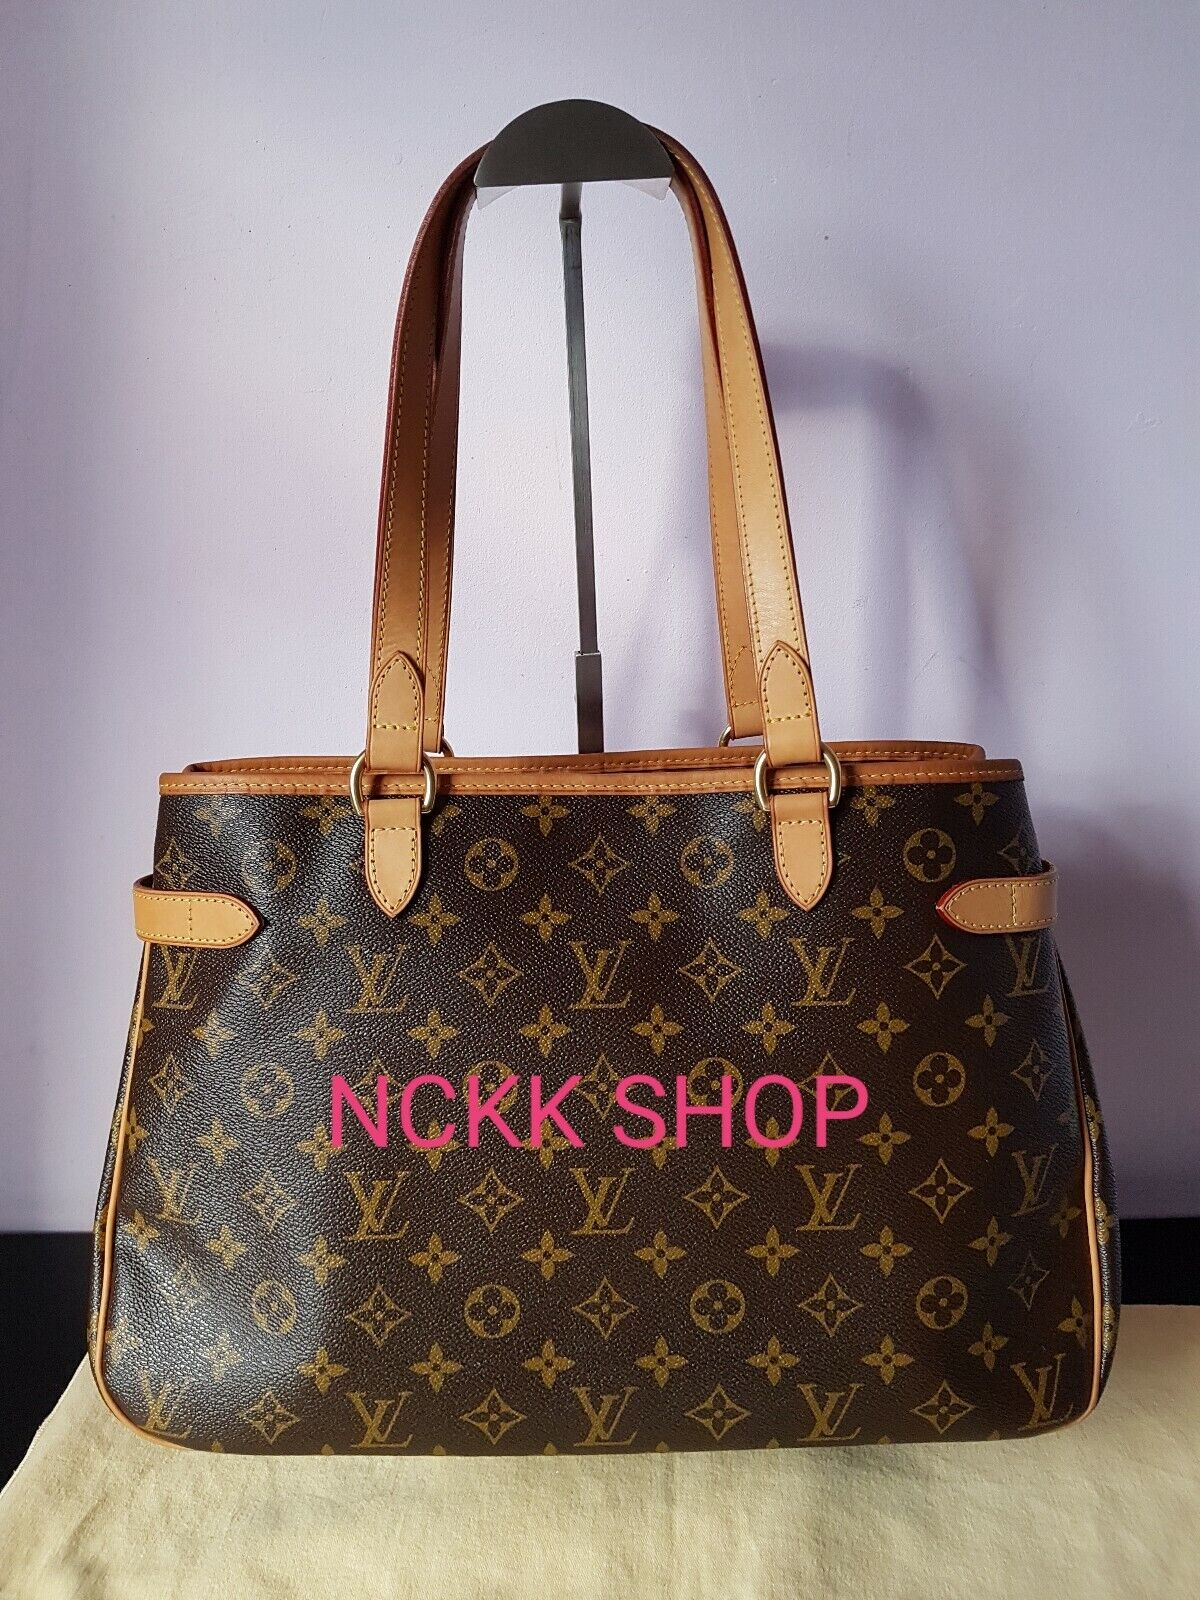 Louis Vuitton Monogram Canvas Batignolles Horizontal Hand Bag m51154 - 825.09,Kaufpreis 825,09,datum 01.07.2020 22:12:38,Website ebay.de